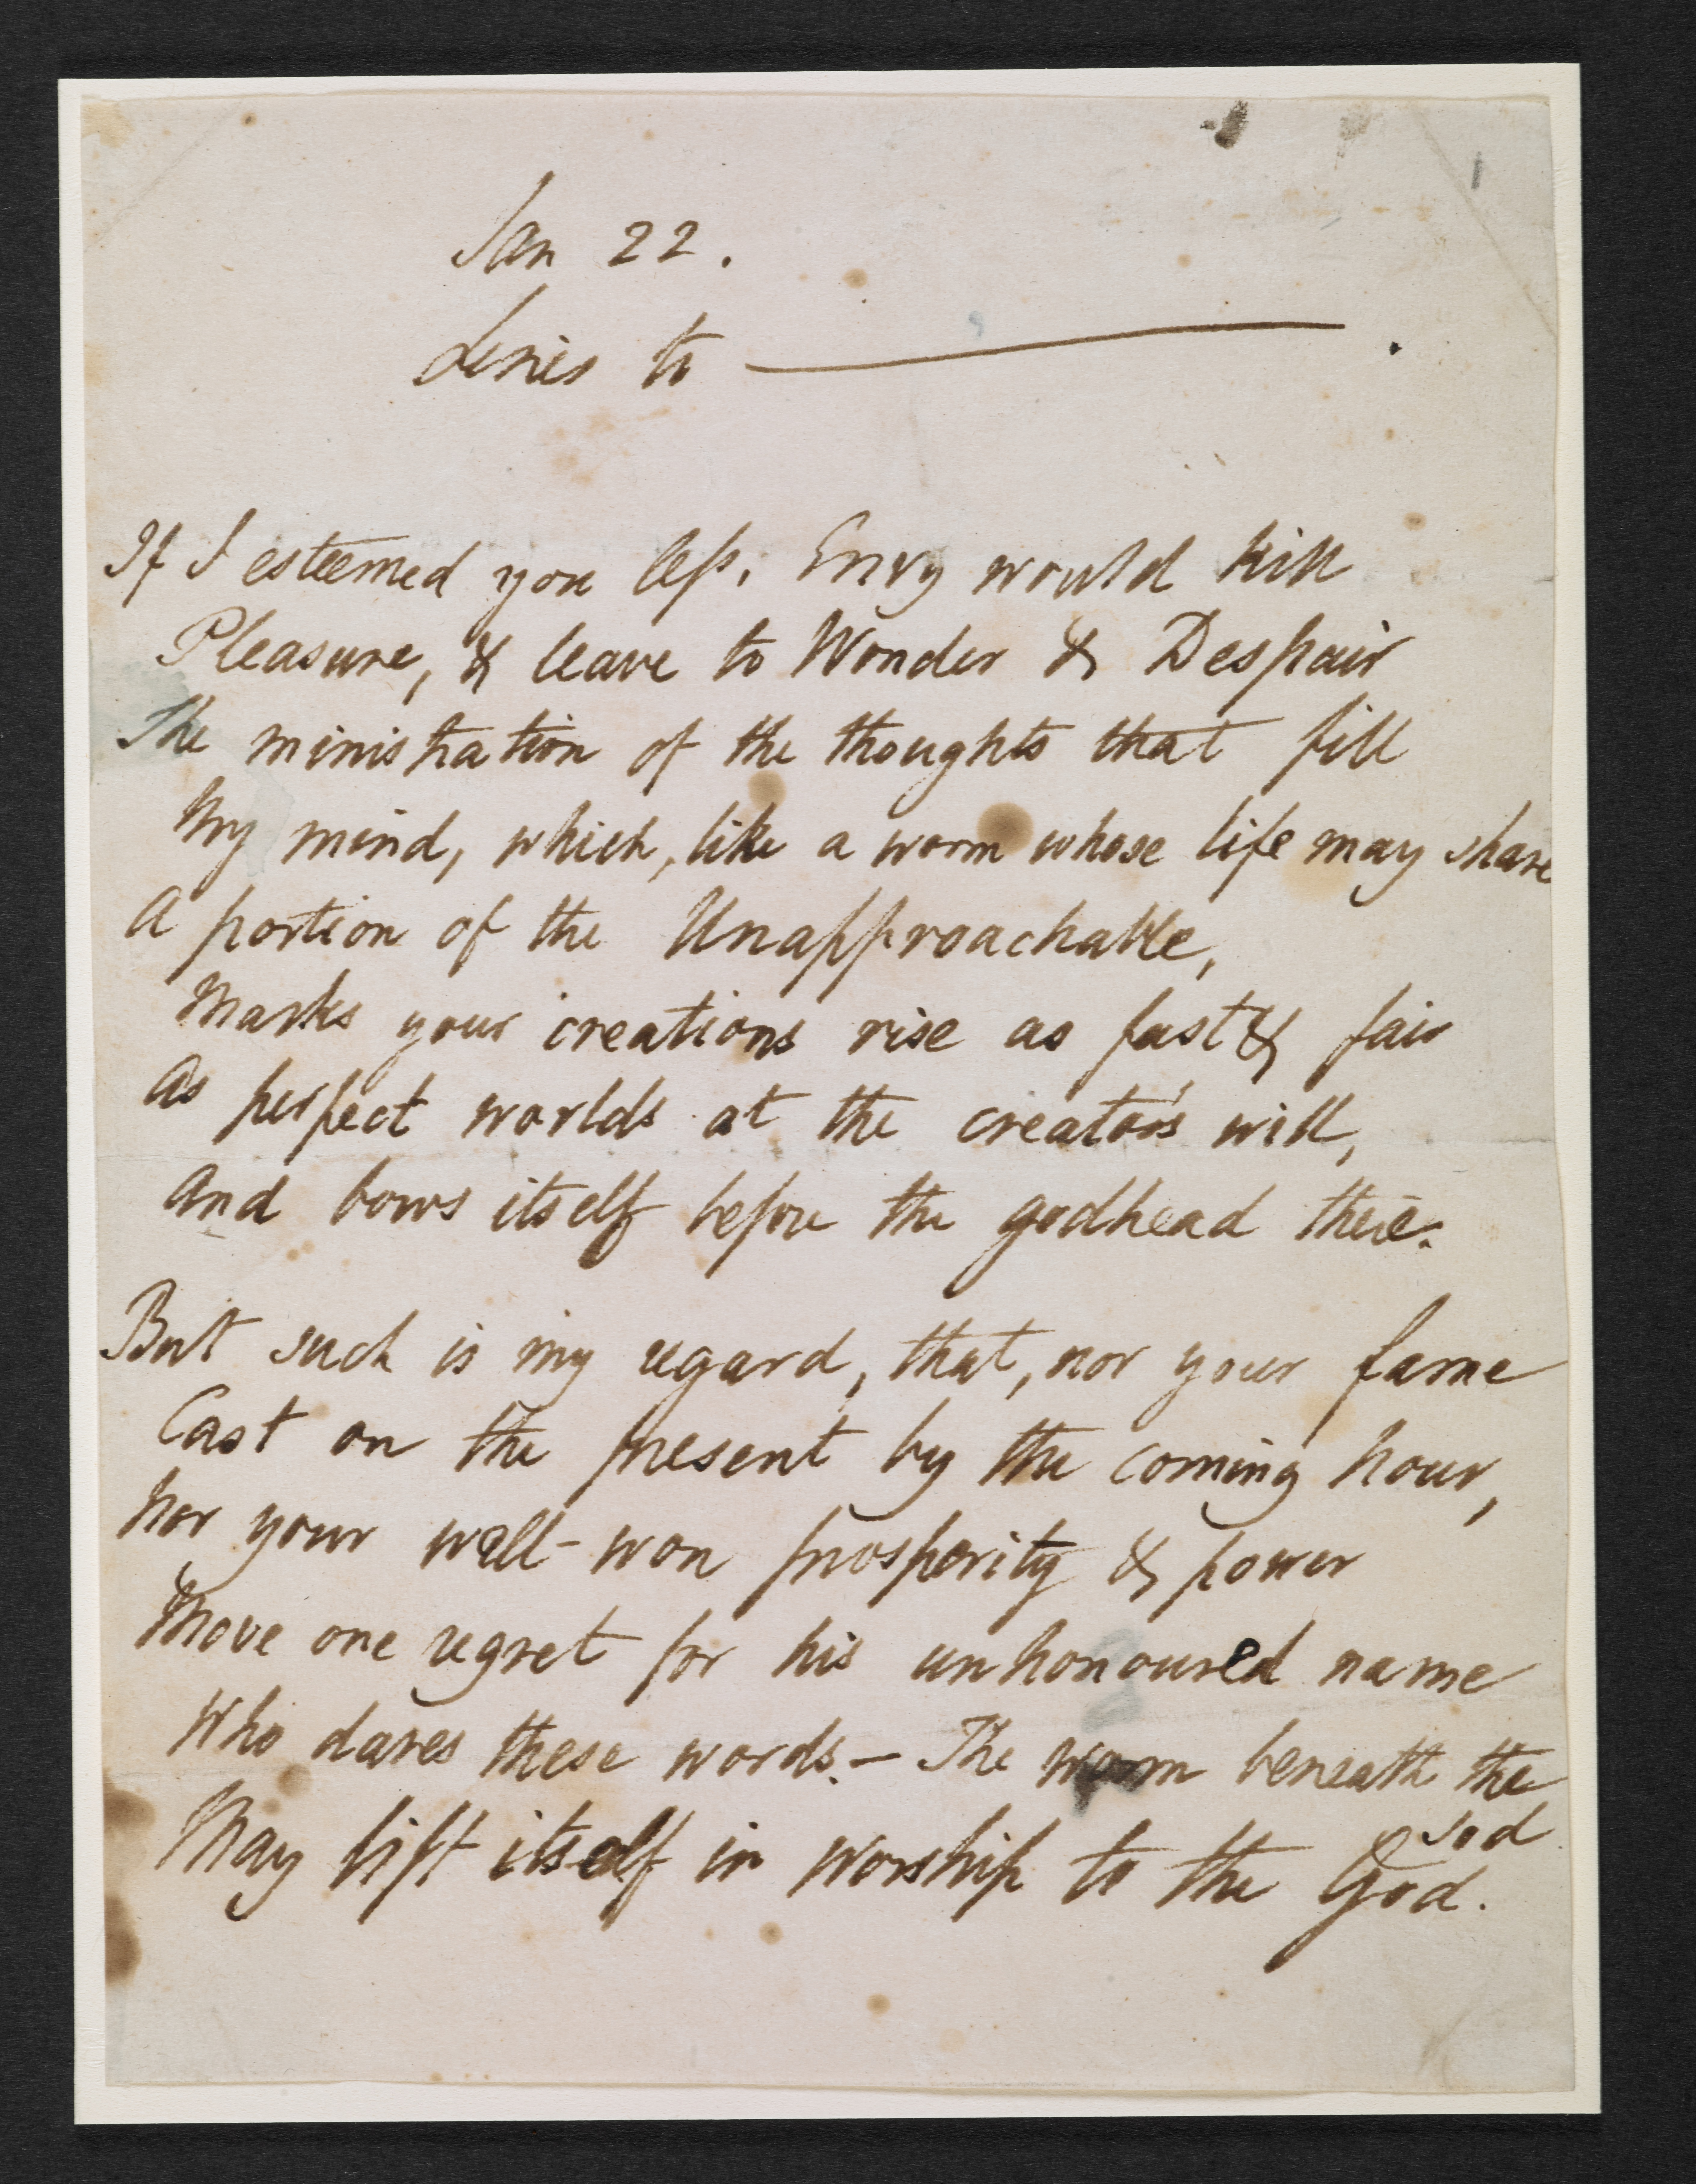 Manuscript of 'Sonnet to Byron' by Percy Bysshe Shelley, about 1821-22, British Library Zweig MS 188